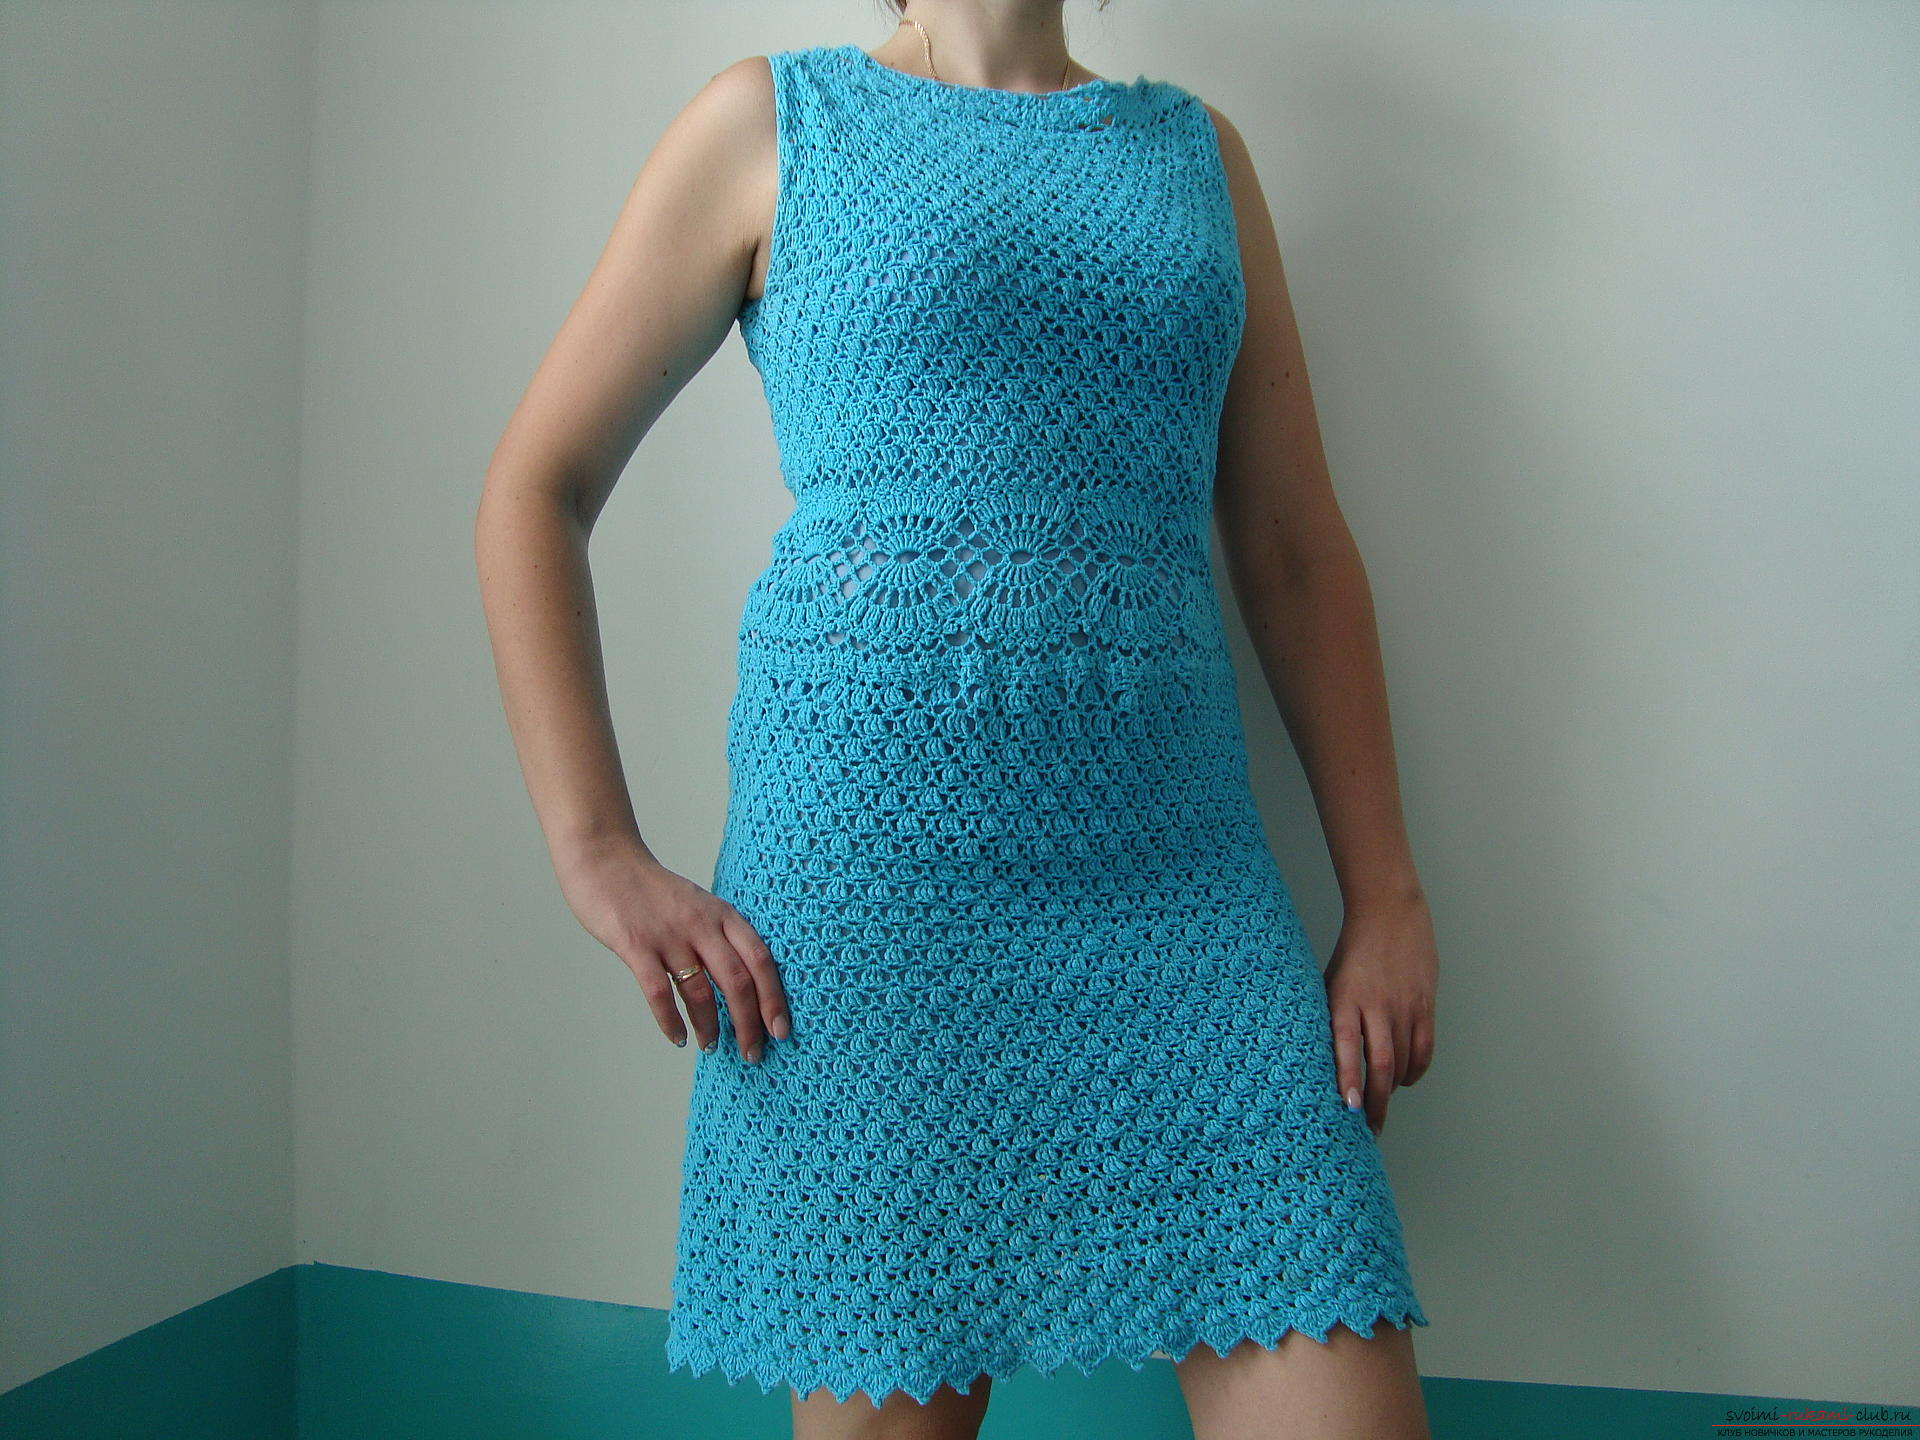 Step-by-step instruction on the binding of a turquoise dress with a crochet. Photo Number 14